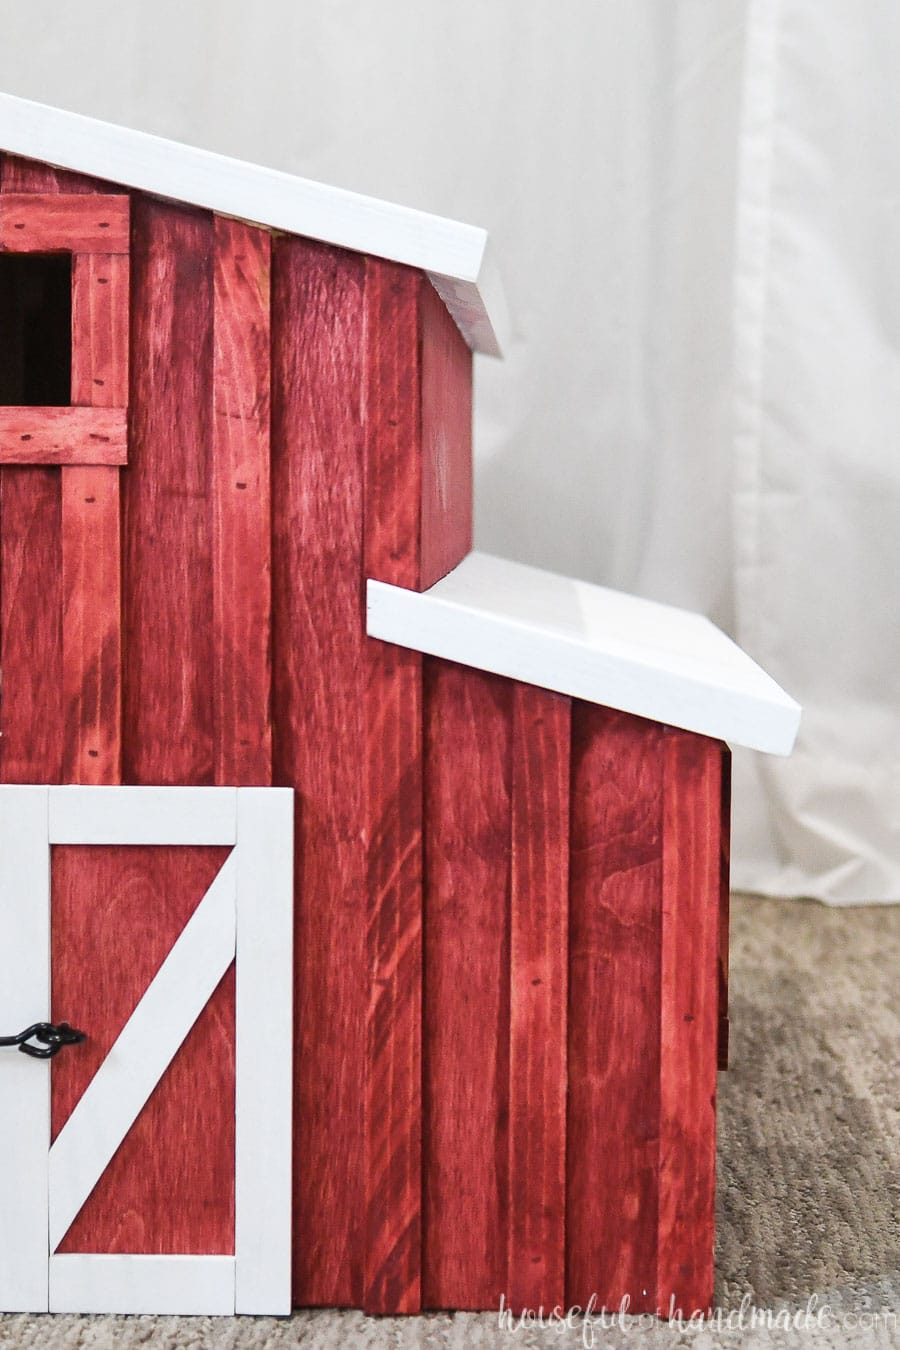 Front view of 1/2 of the wooden toy barn with red stain and white trim.